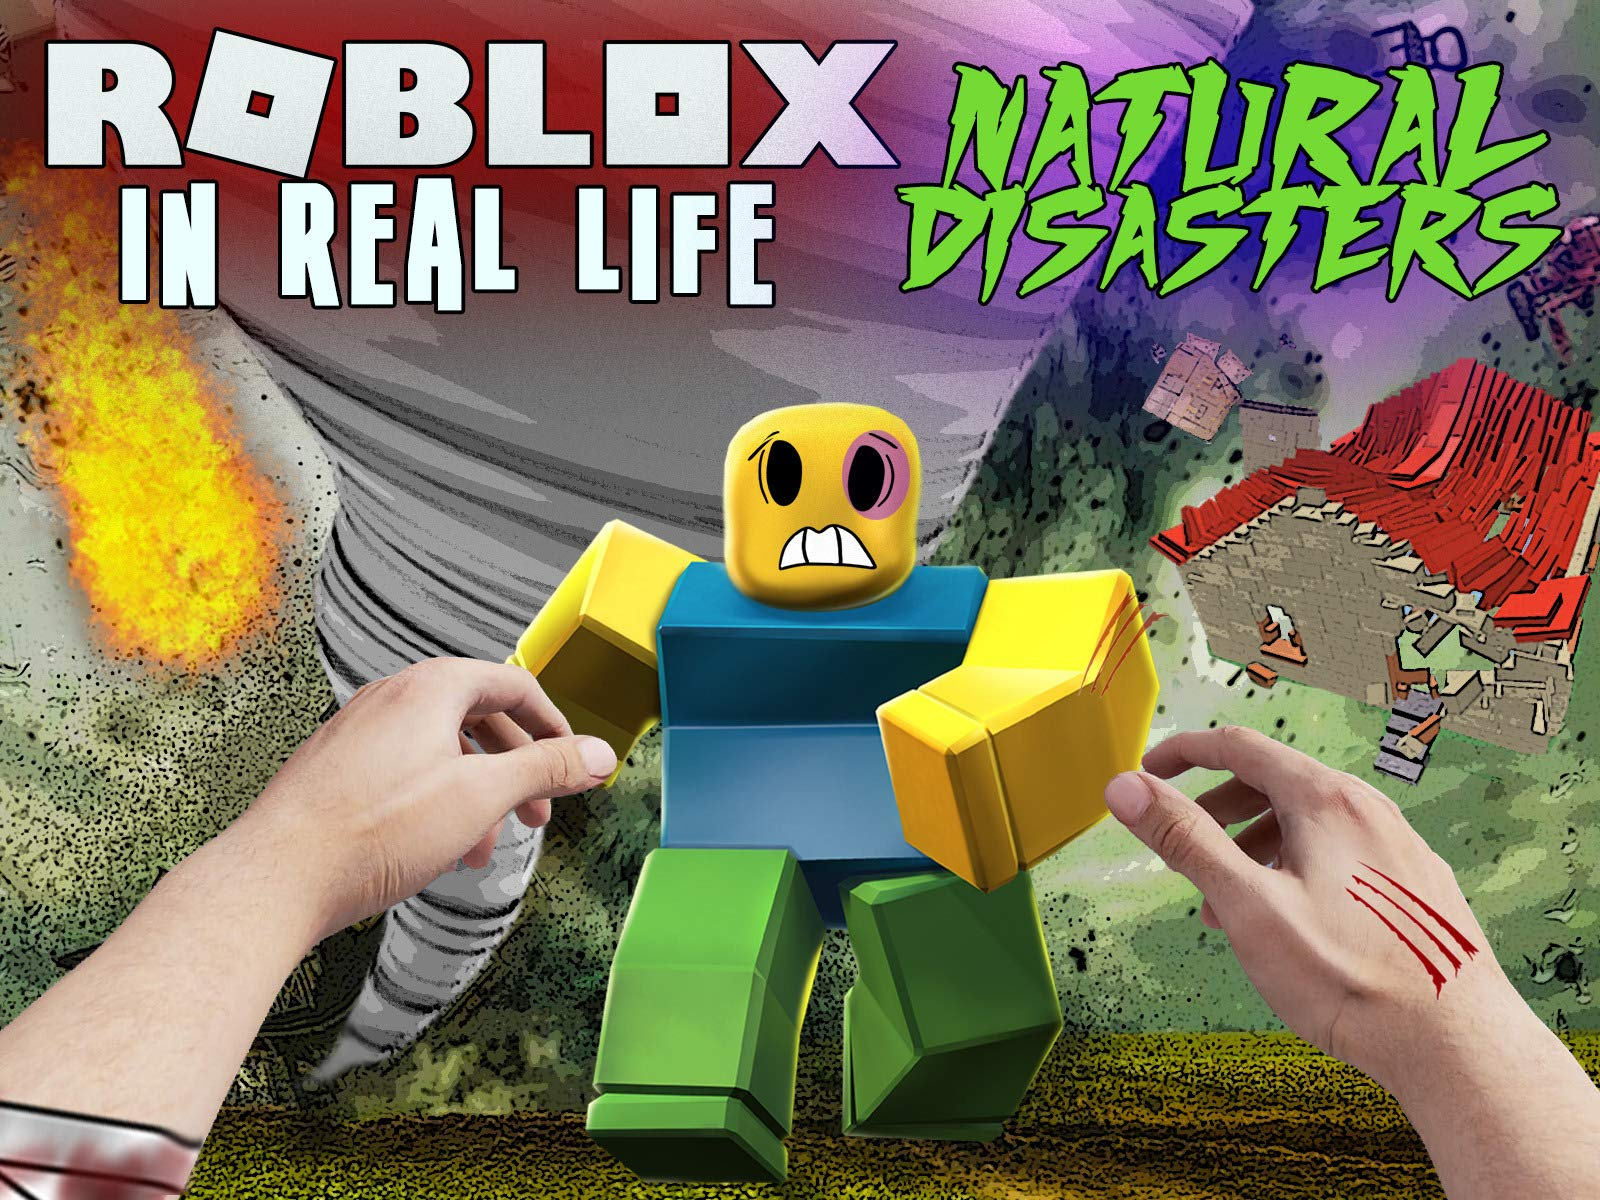 Roblox In Real Life - Natural Disasters on Amazon Prime Video UK